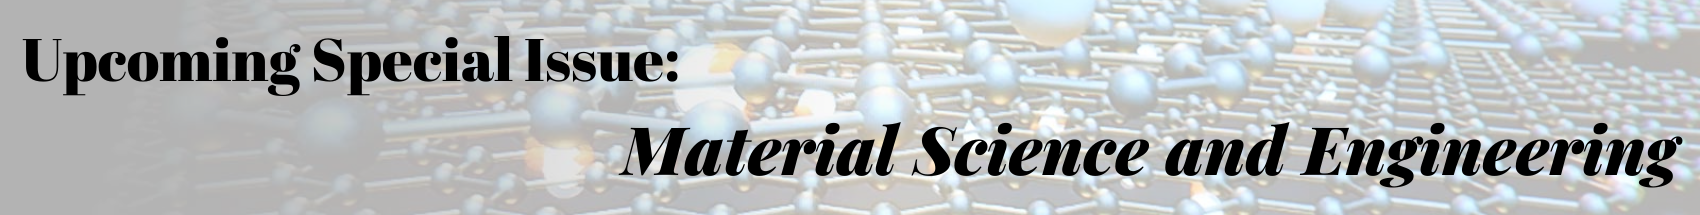 upcoming-special-issue-material-science-and-engineering-2178.png